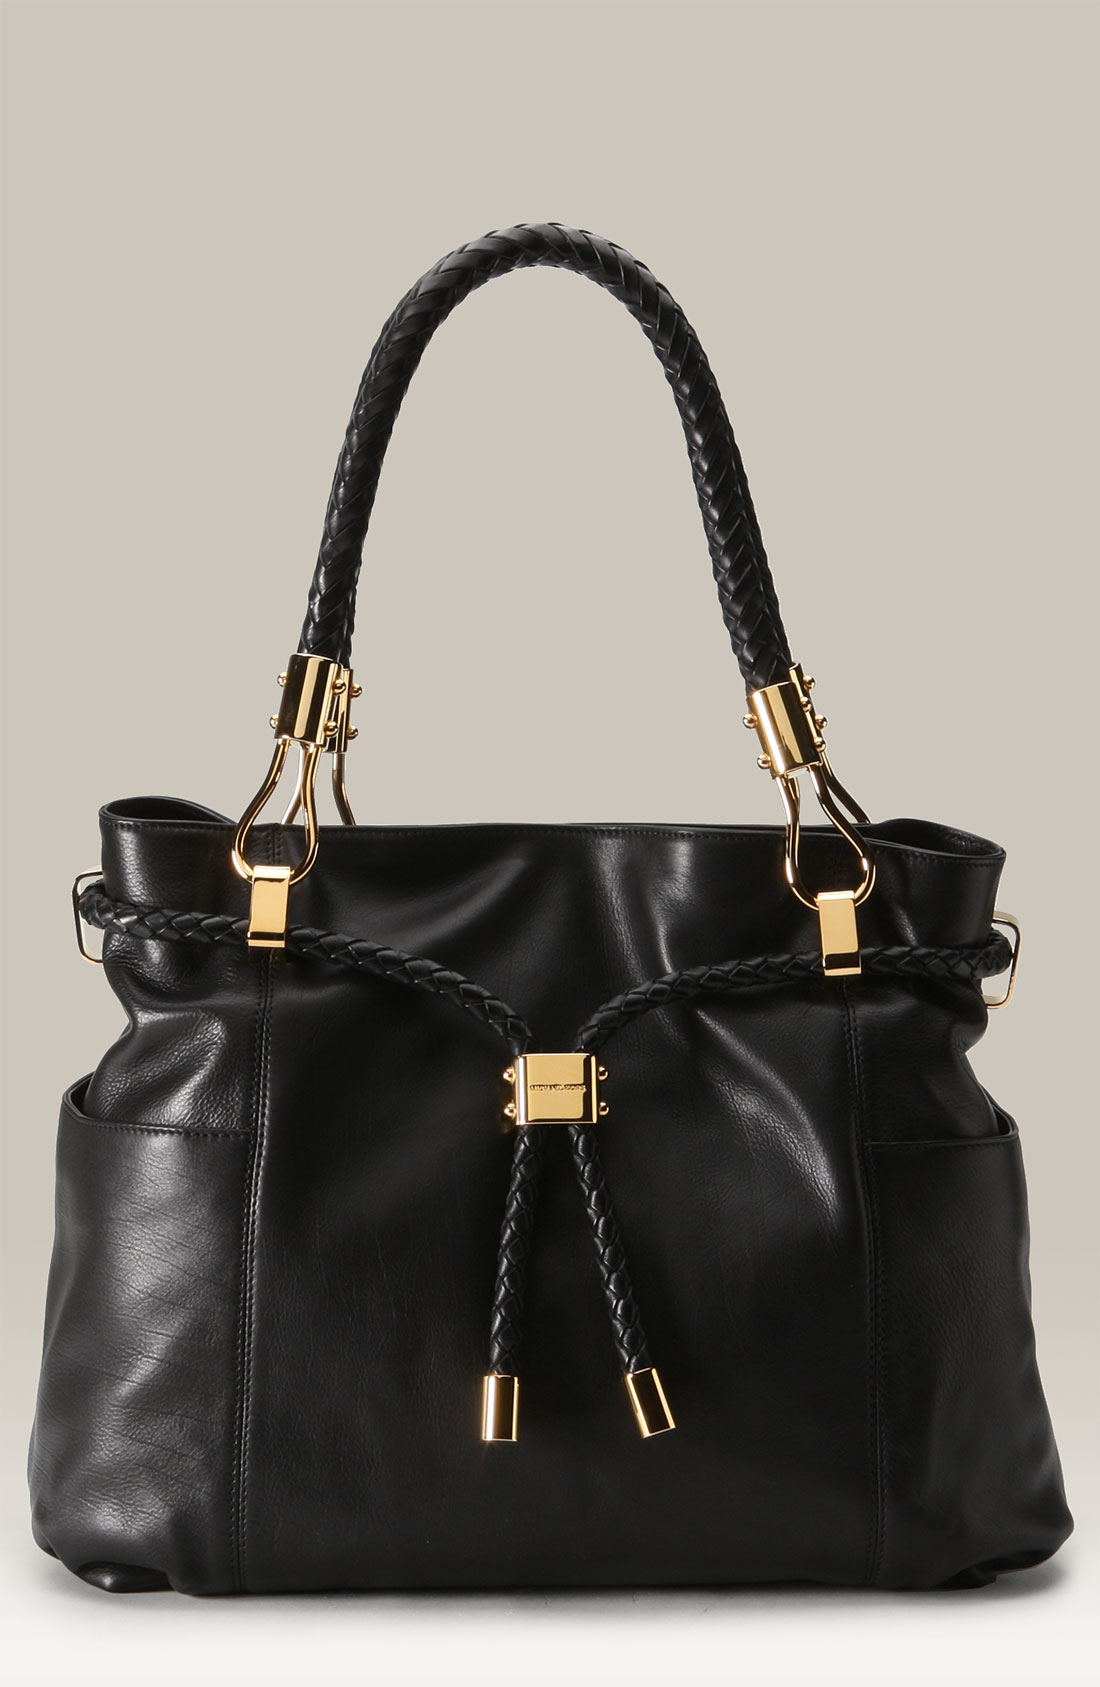 d665d3ee65b0 ... Michael kors Skorpios Pebbled Leather Drawstring Satchel in mk satchels  skorpios menu mksale ...